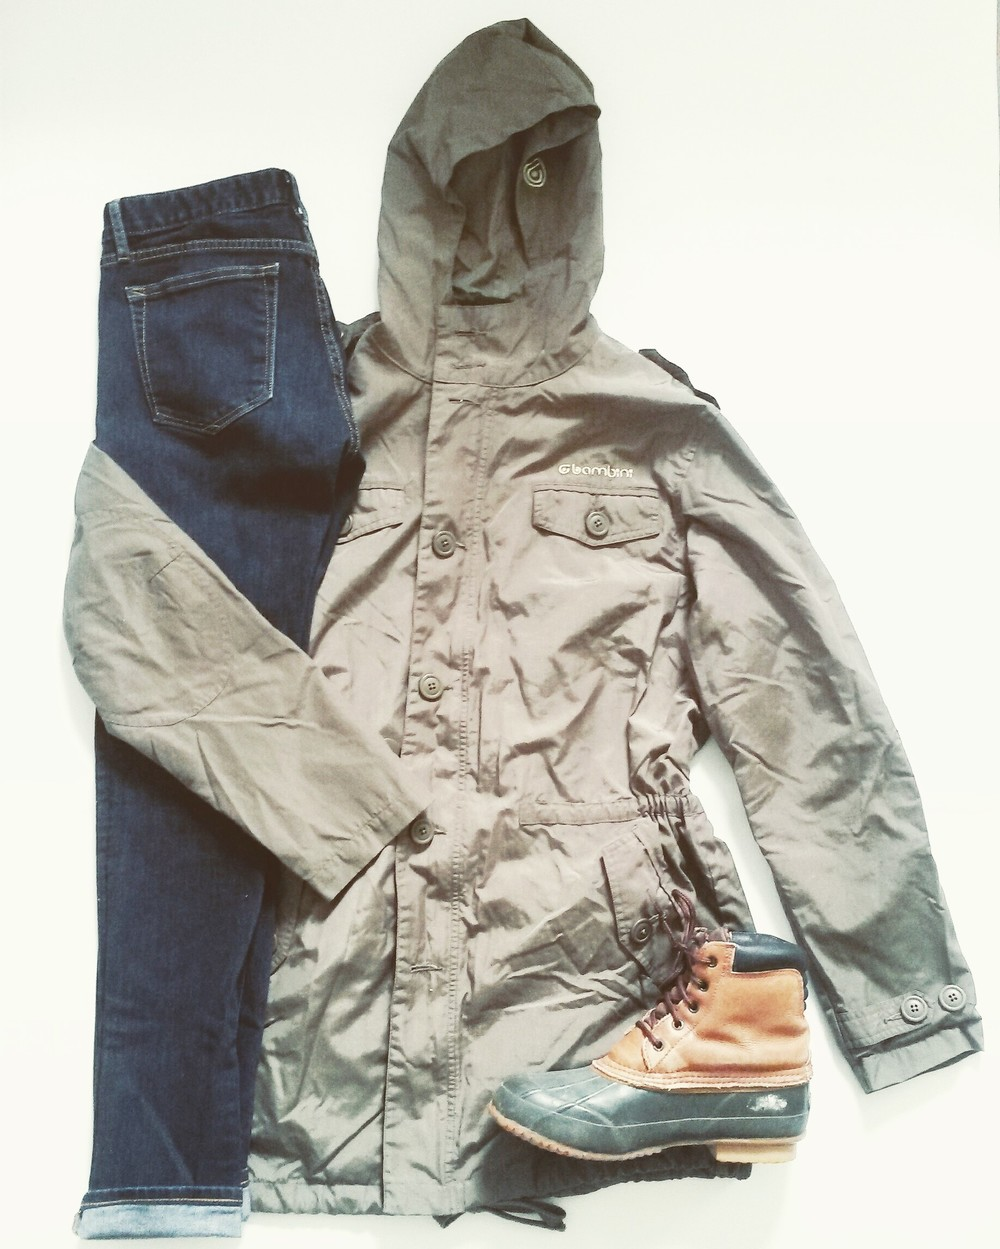 Bambini brand weather resistant army green jacket, Gap 1969 jeans, Thermalite boots, all thrifted